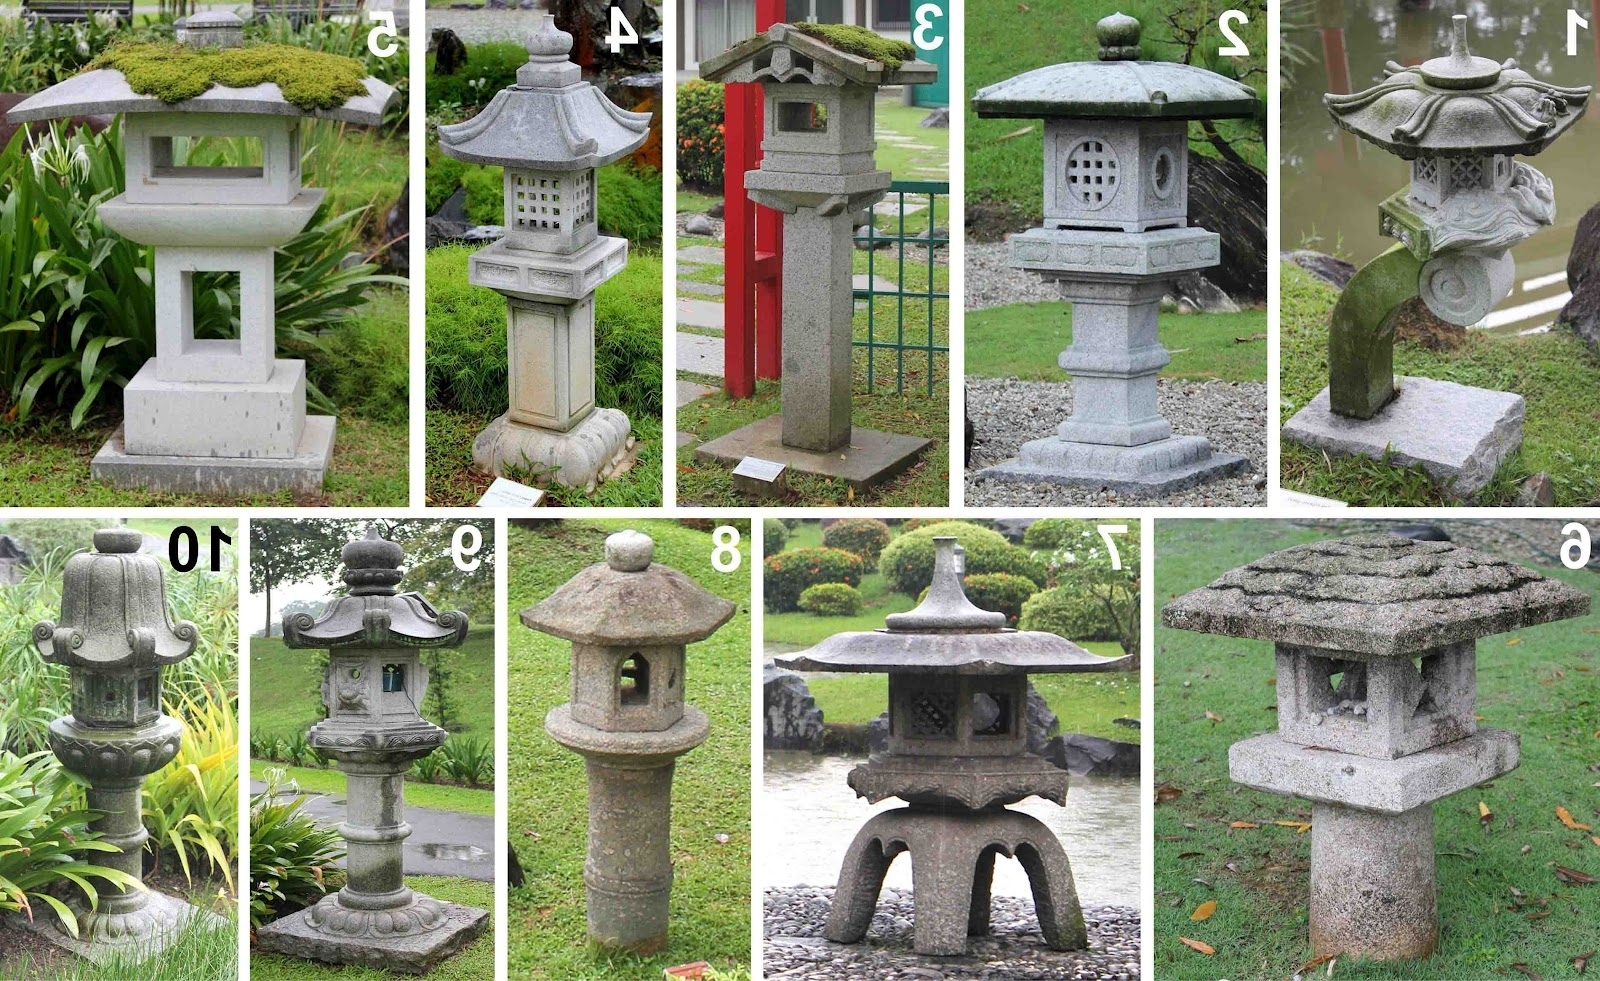 Outdoor Japanese Lamp New Bonsai Skosh Stone Lanterns At Singapore Pertaining To Most Up To Date Outdoor Japanese Lanterns (Gallery 14 of 20)